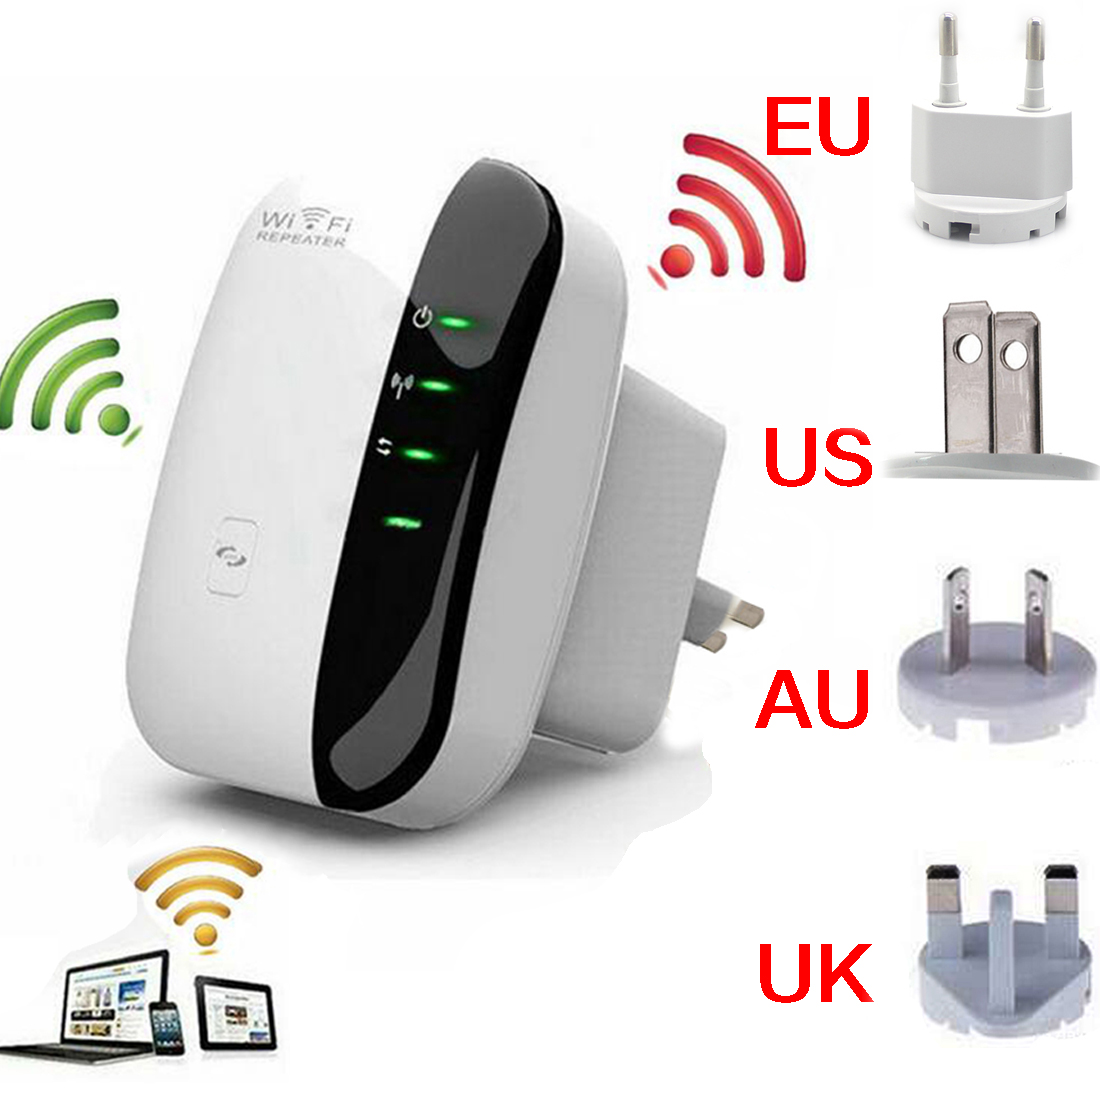 NOYOKERE Wireless-N Wifi Repeater 802.11n/b/g Network Wi Fi Routers 300Mbps Range Expander Signal Booster Extender WIFI